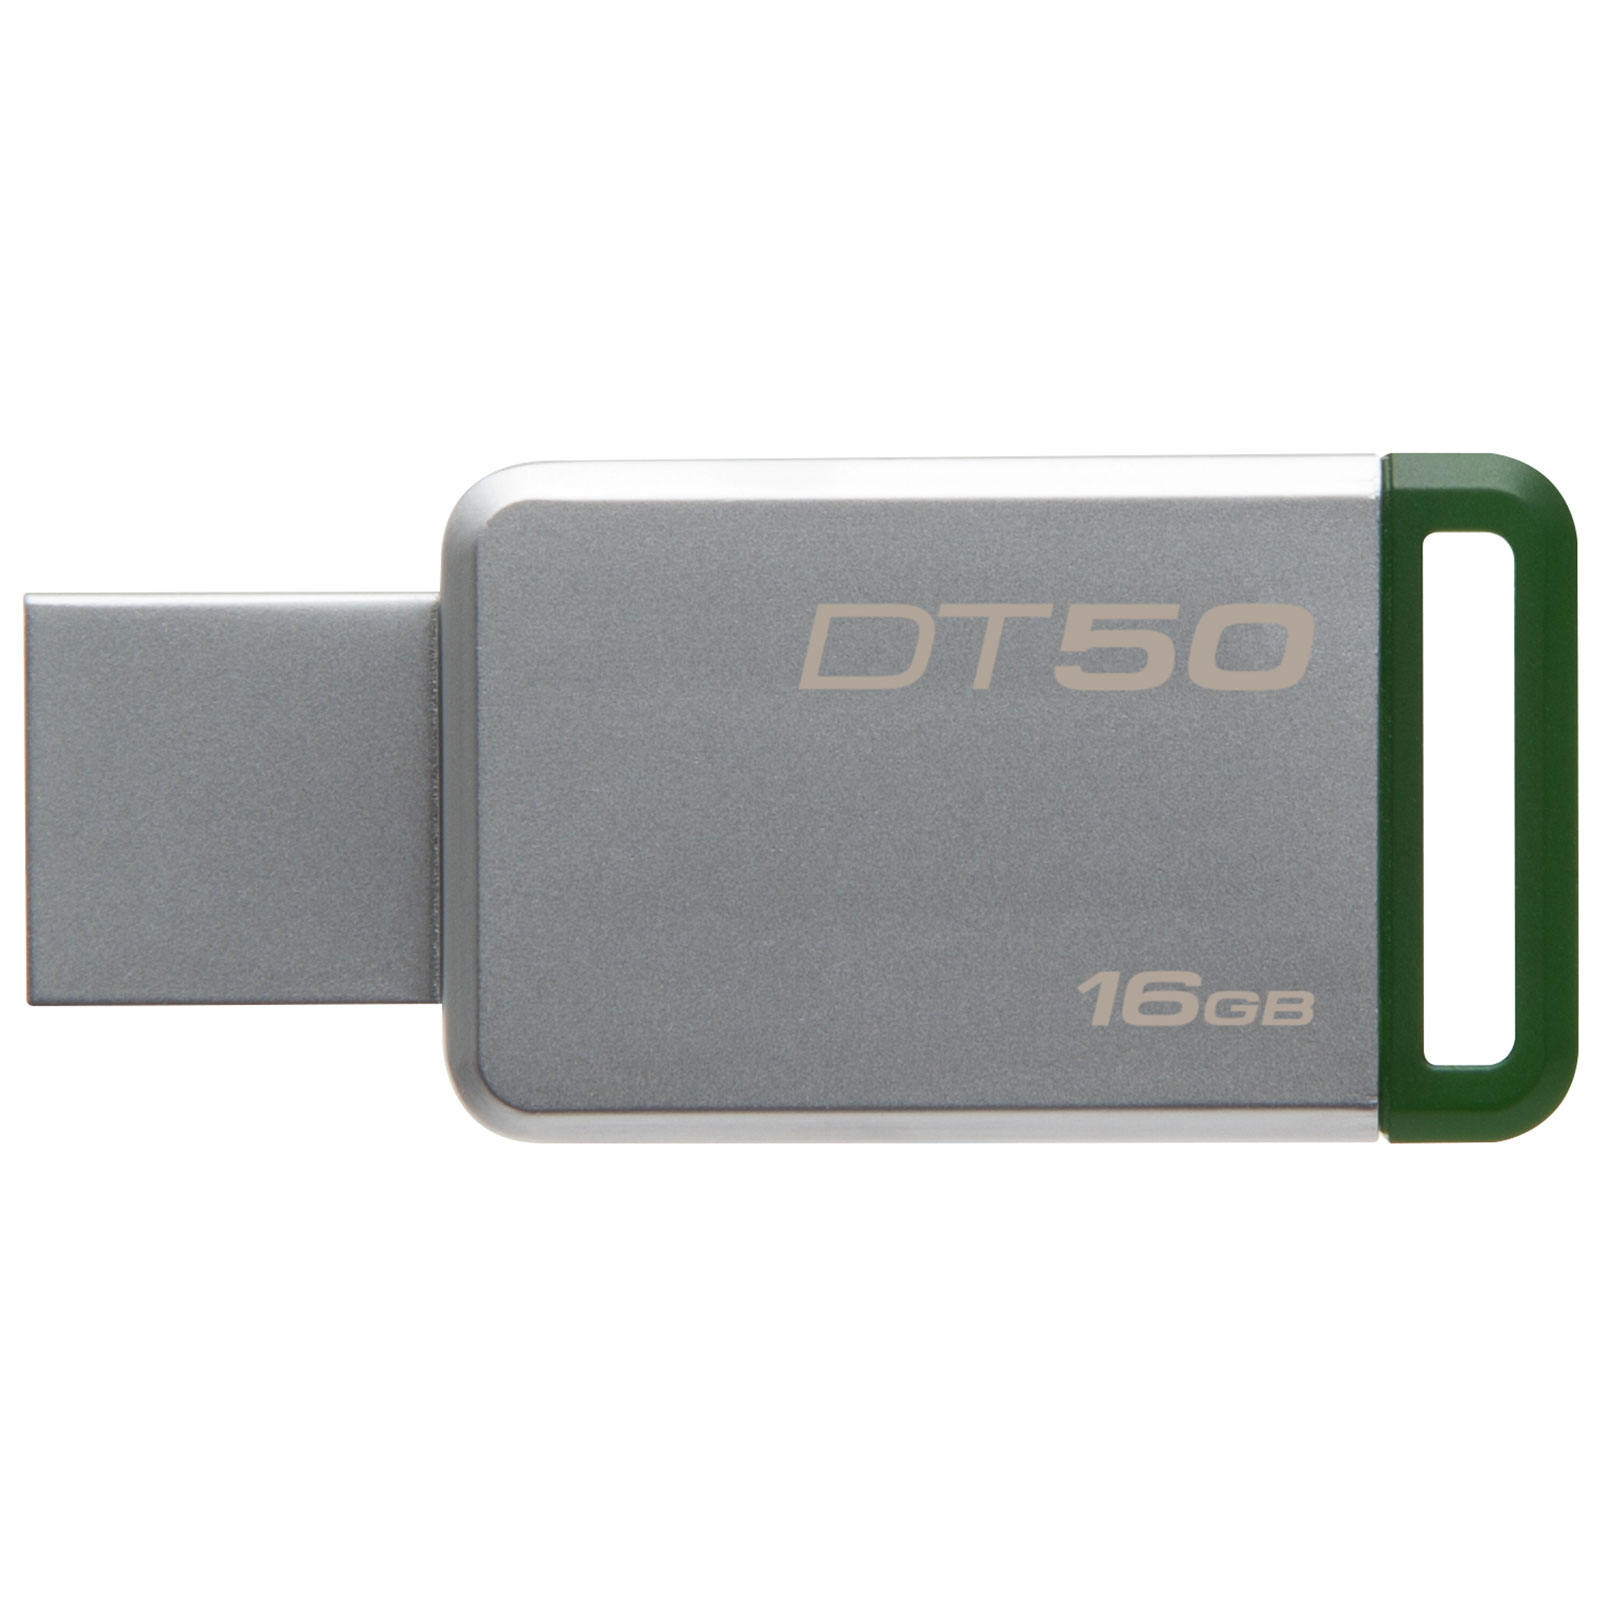 Kingston 16Go USB 3.1 - Clé USB Kingston - Cybertek.fr - 1